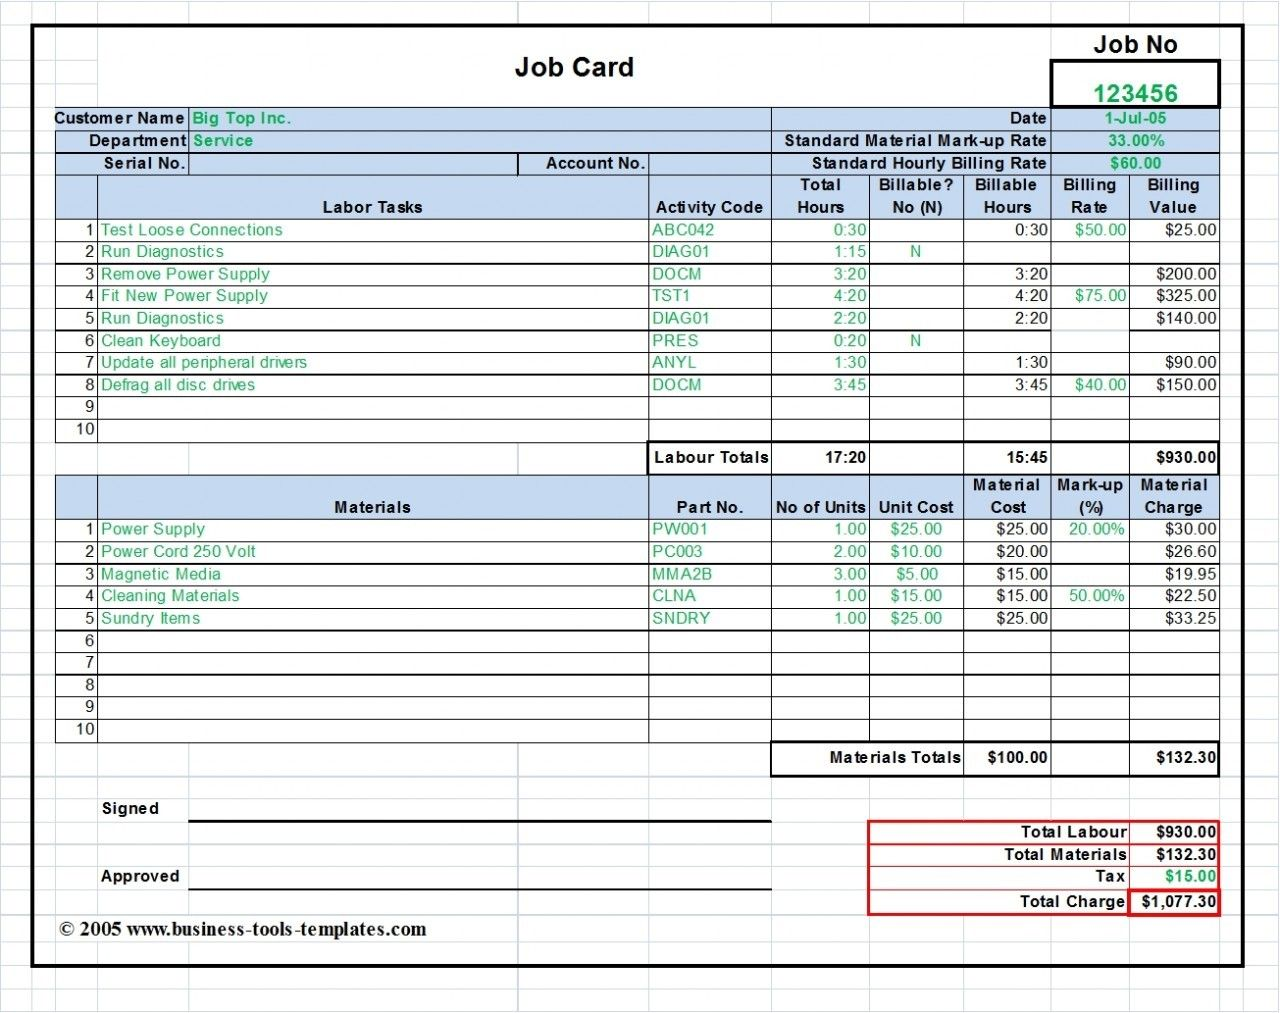 Labor Amp Material Cost Estimator And Job Card Template Ms